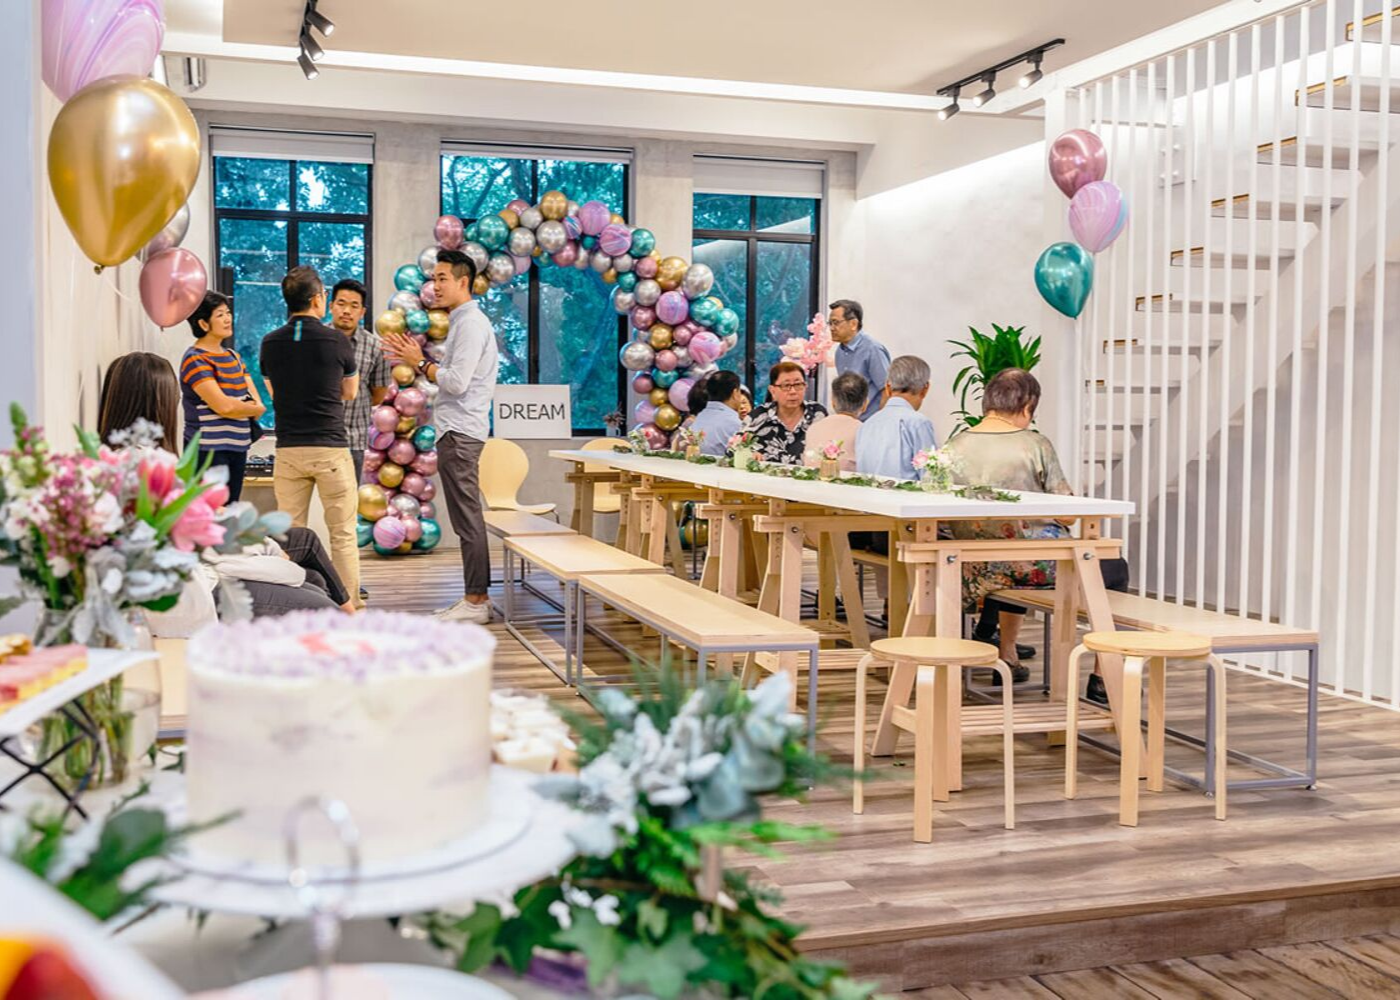 Kara Moments at Kara Cafe and Dessert Bar | Cool party venues in Singapore